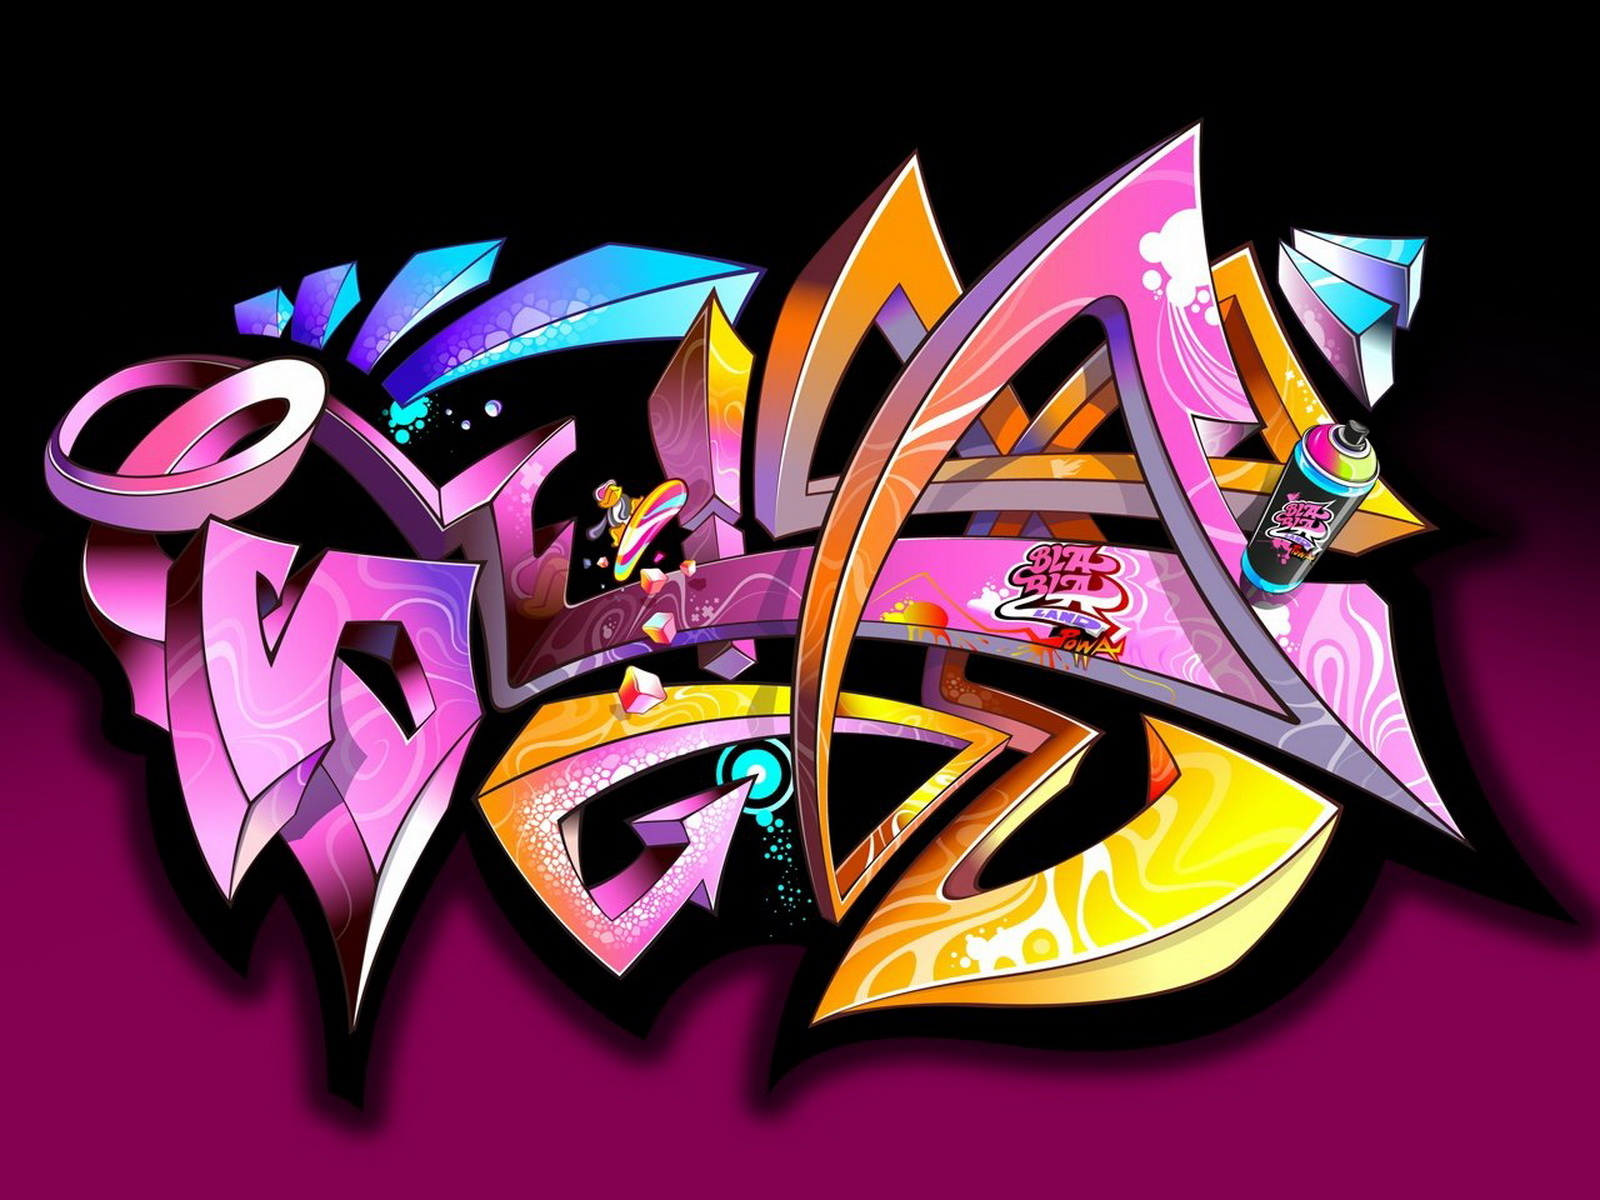 Graffiti wallpaper new graffiti art for Graffiti wallpaper